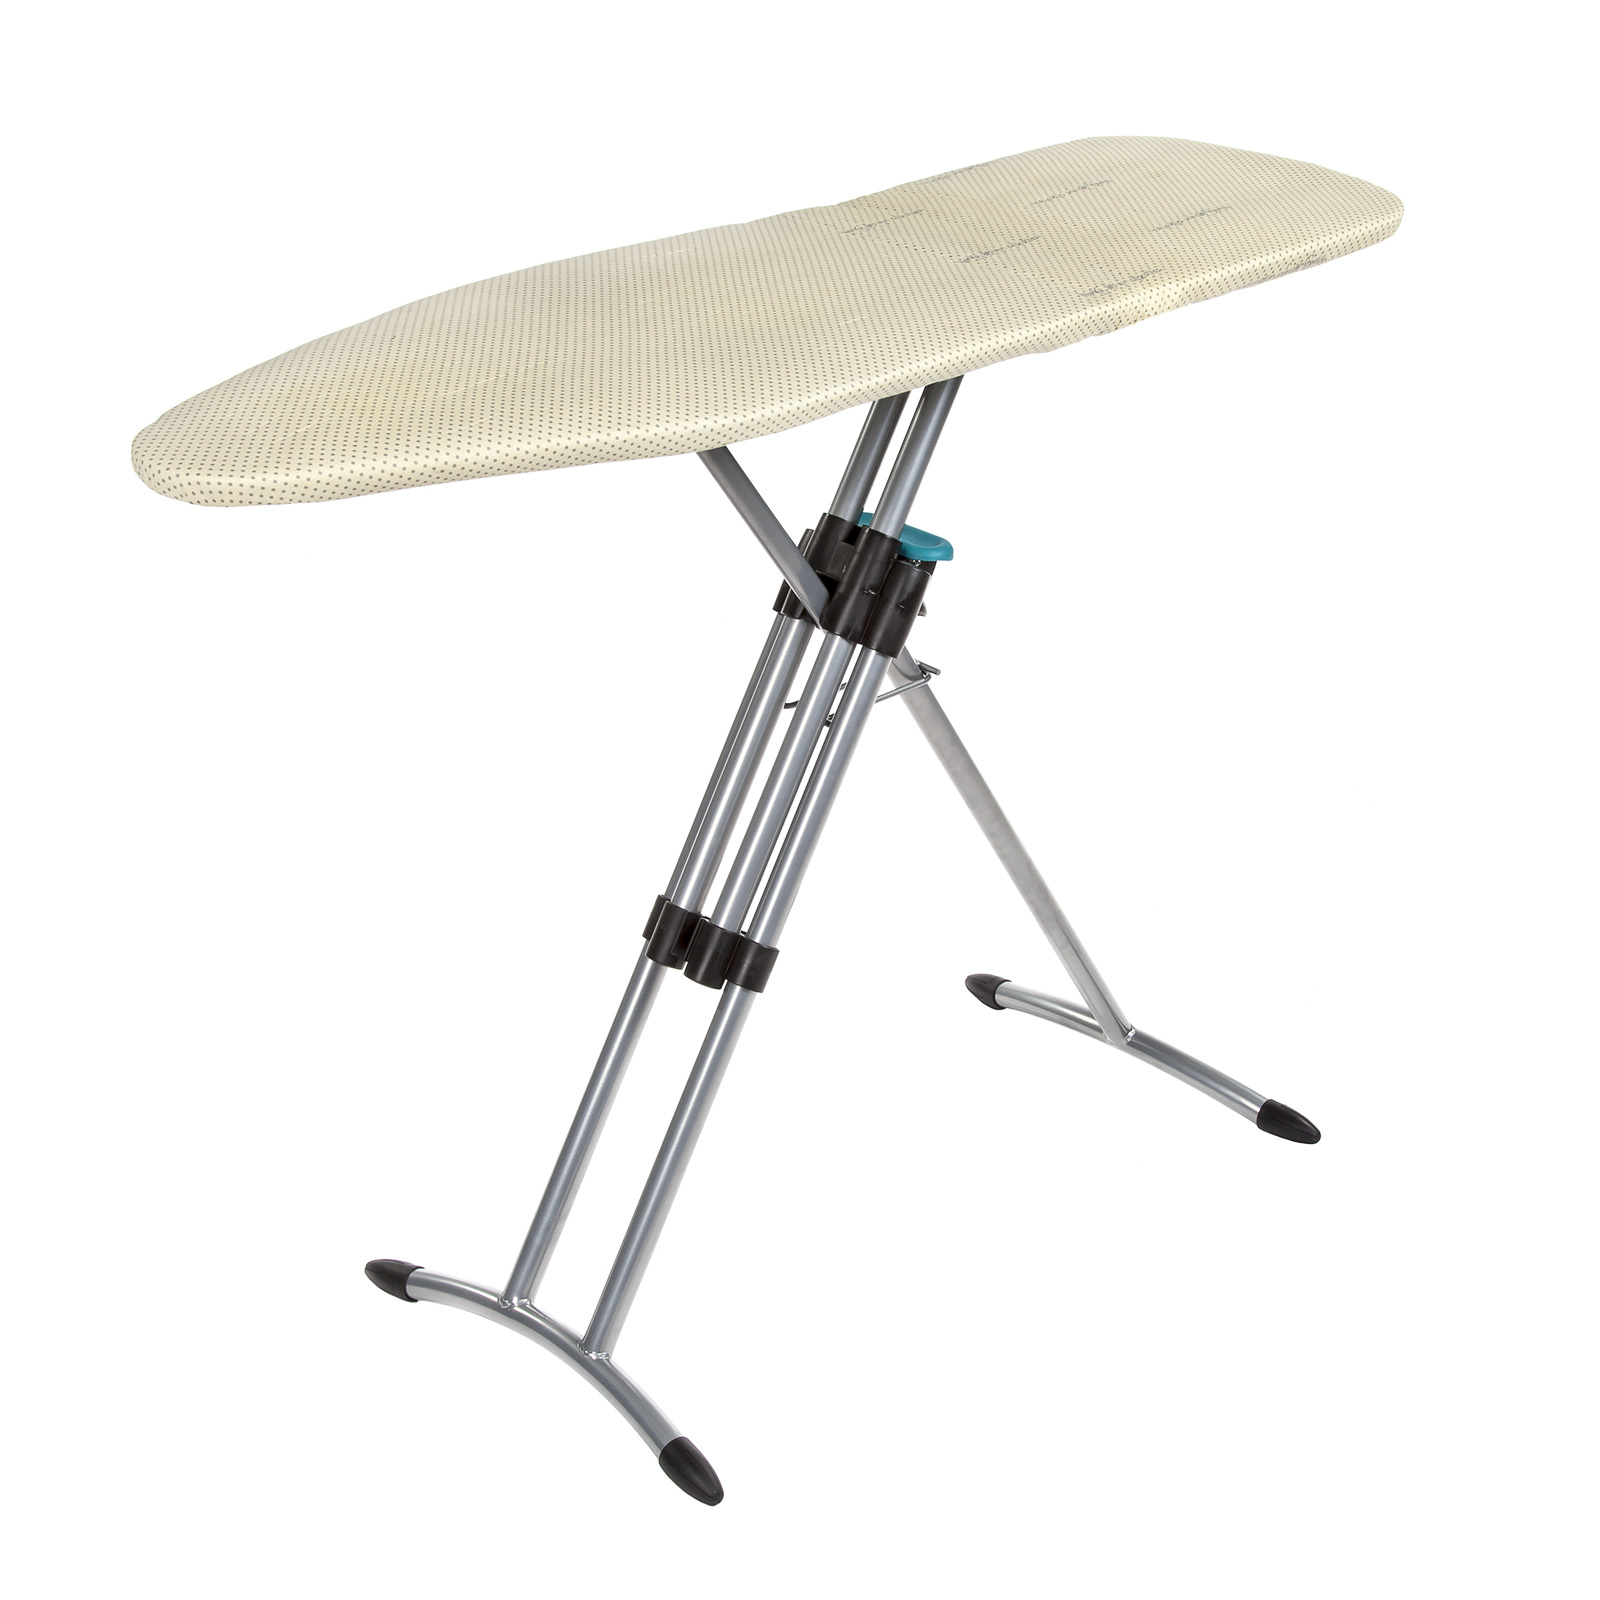 ironing board description of a Buy ultimate ironing board with cabinet - white : description the galaxy, ultimate ironing board with cabinet the last ironing board you will ever buy more than just an ironing board, but an entire system a unique product.